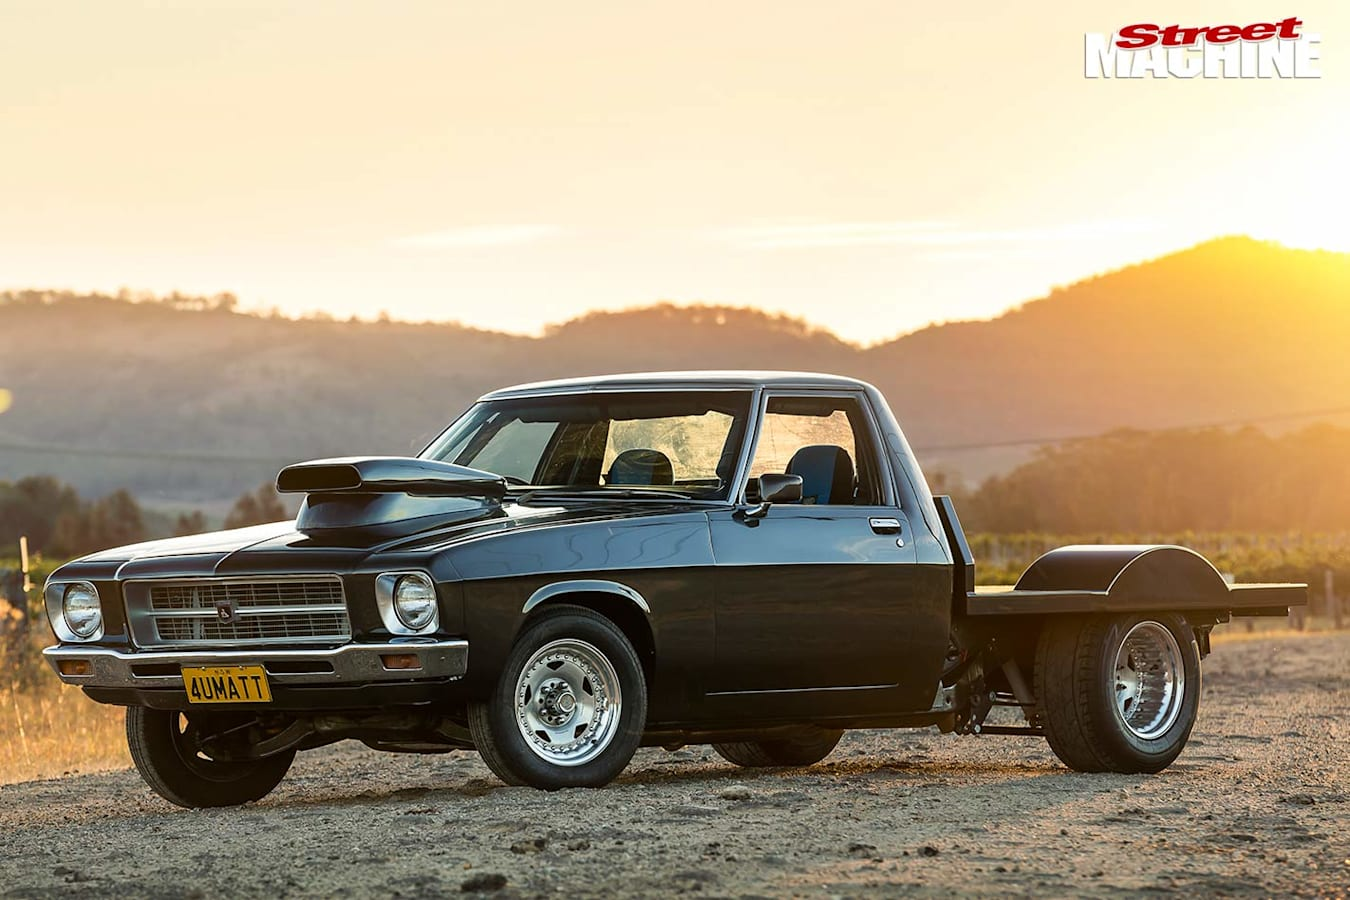 Holden One Tonner front